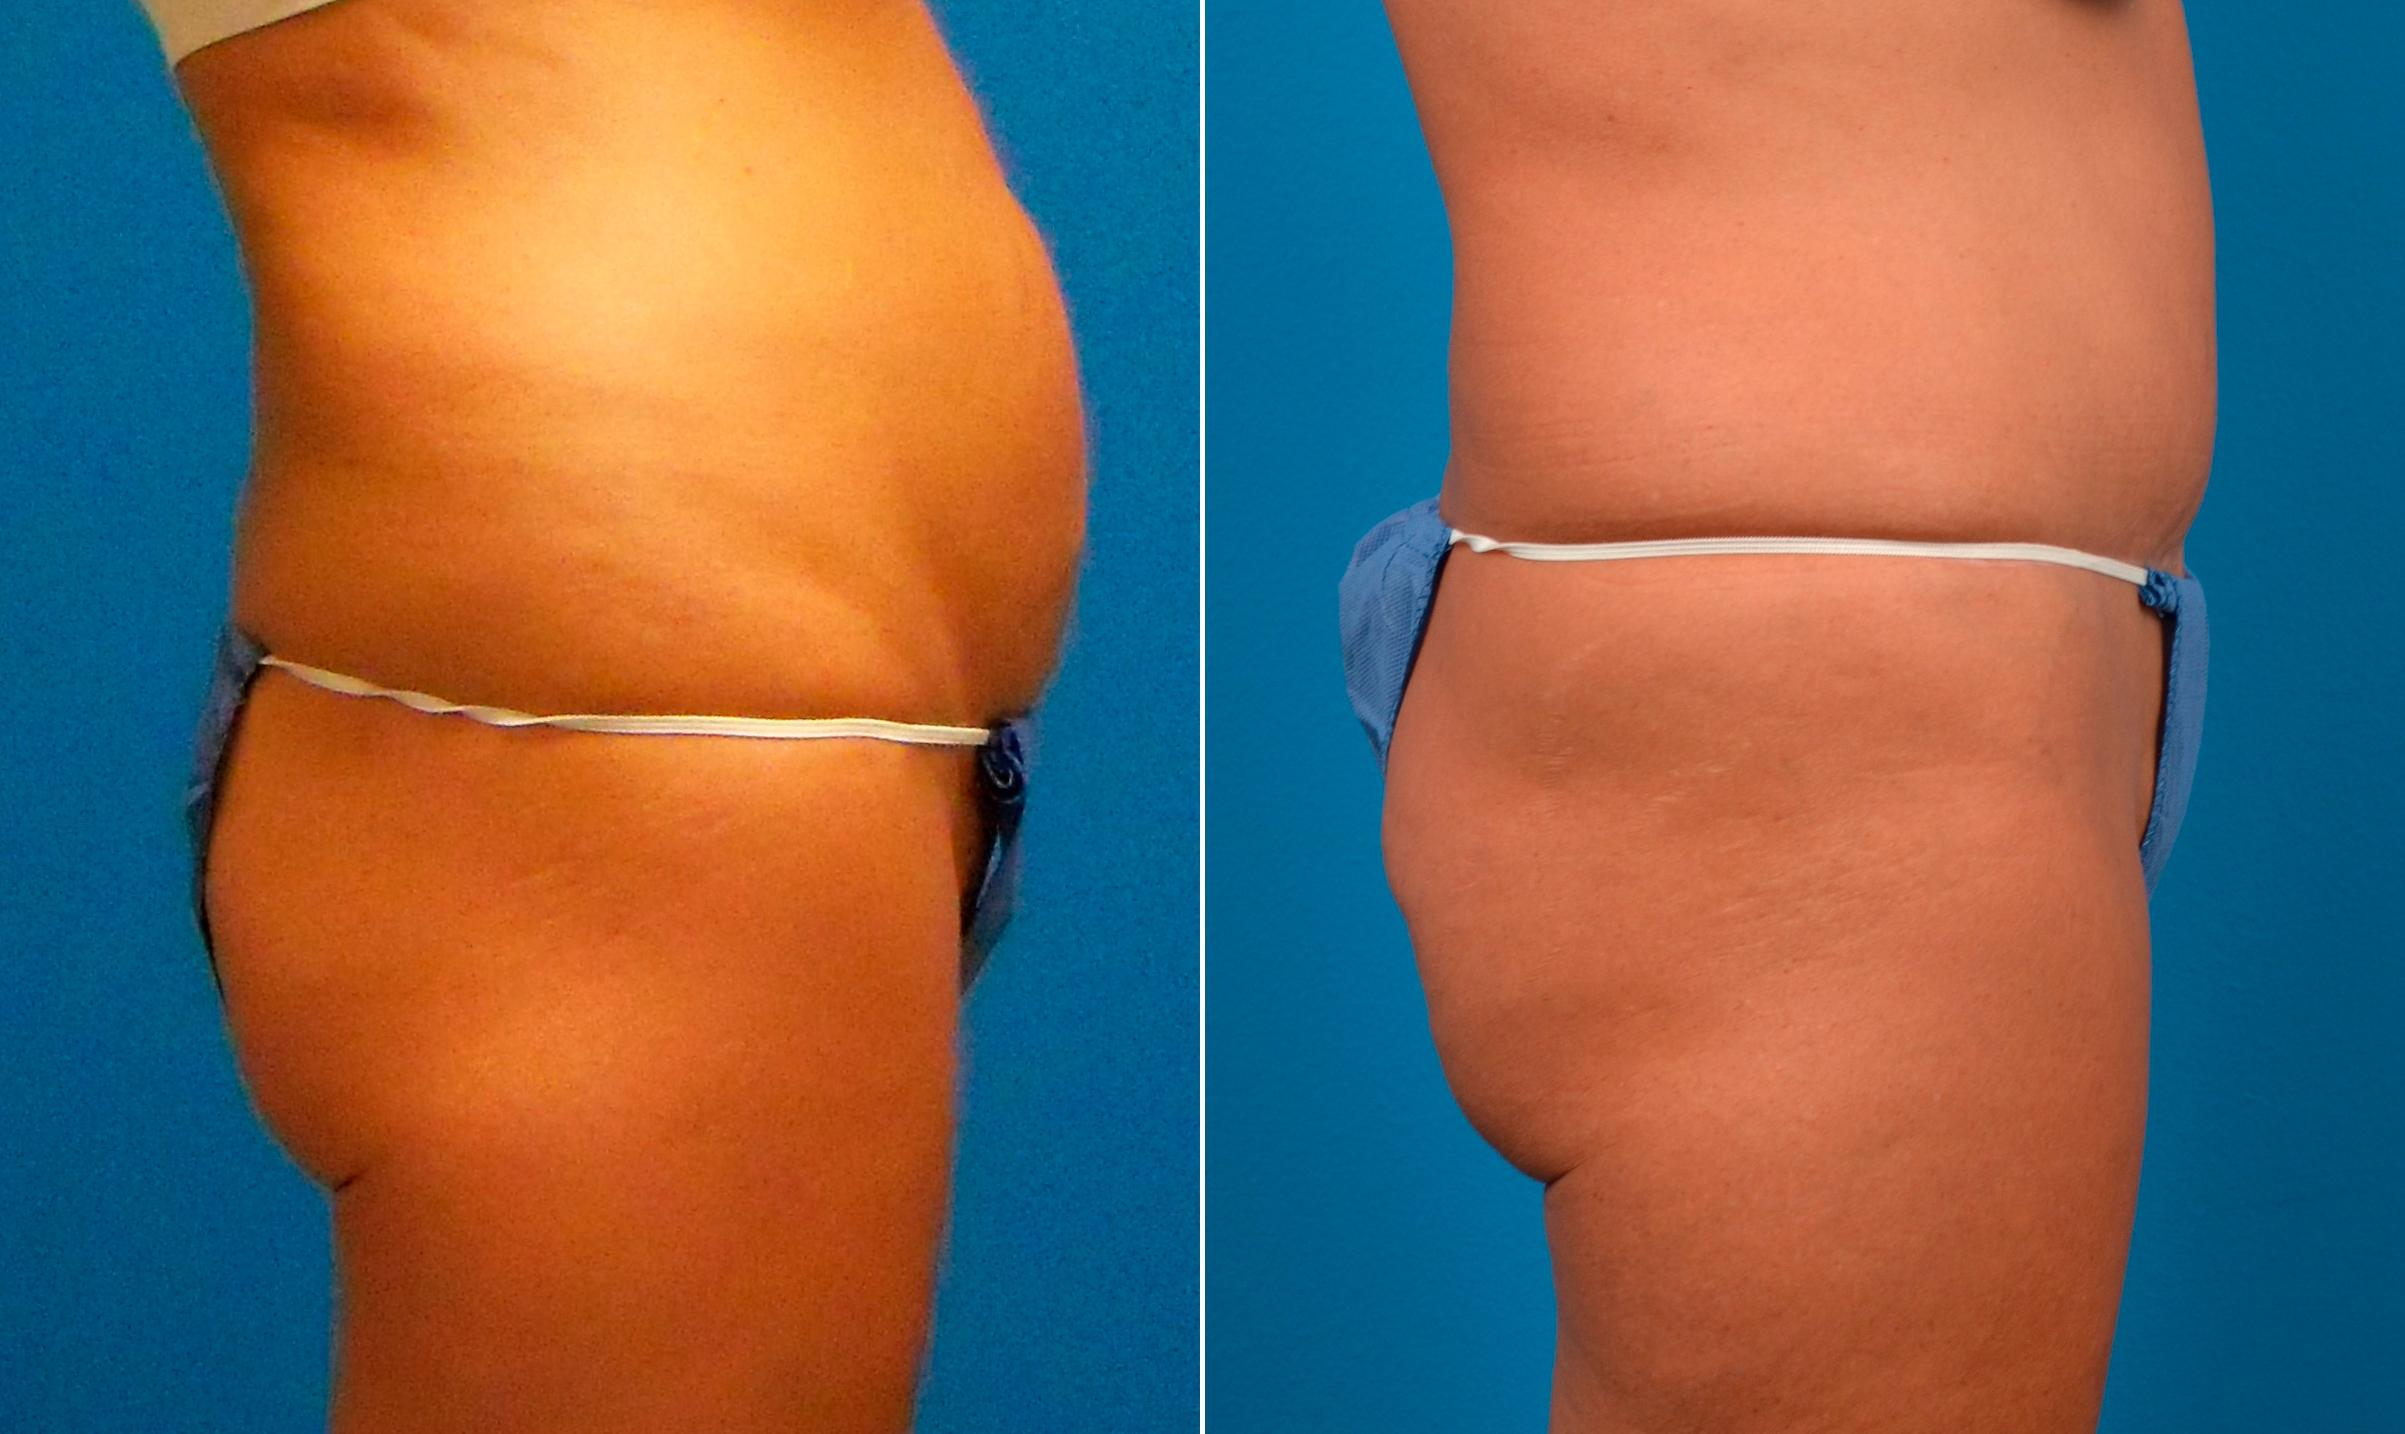 before and after pictures in Melbourne, FL, Body Contouring After Weight Loss in Melbourne, FL